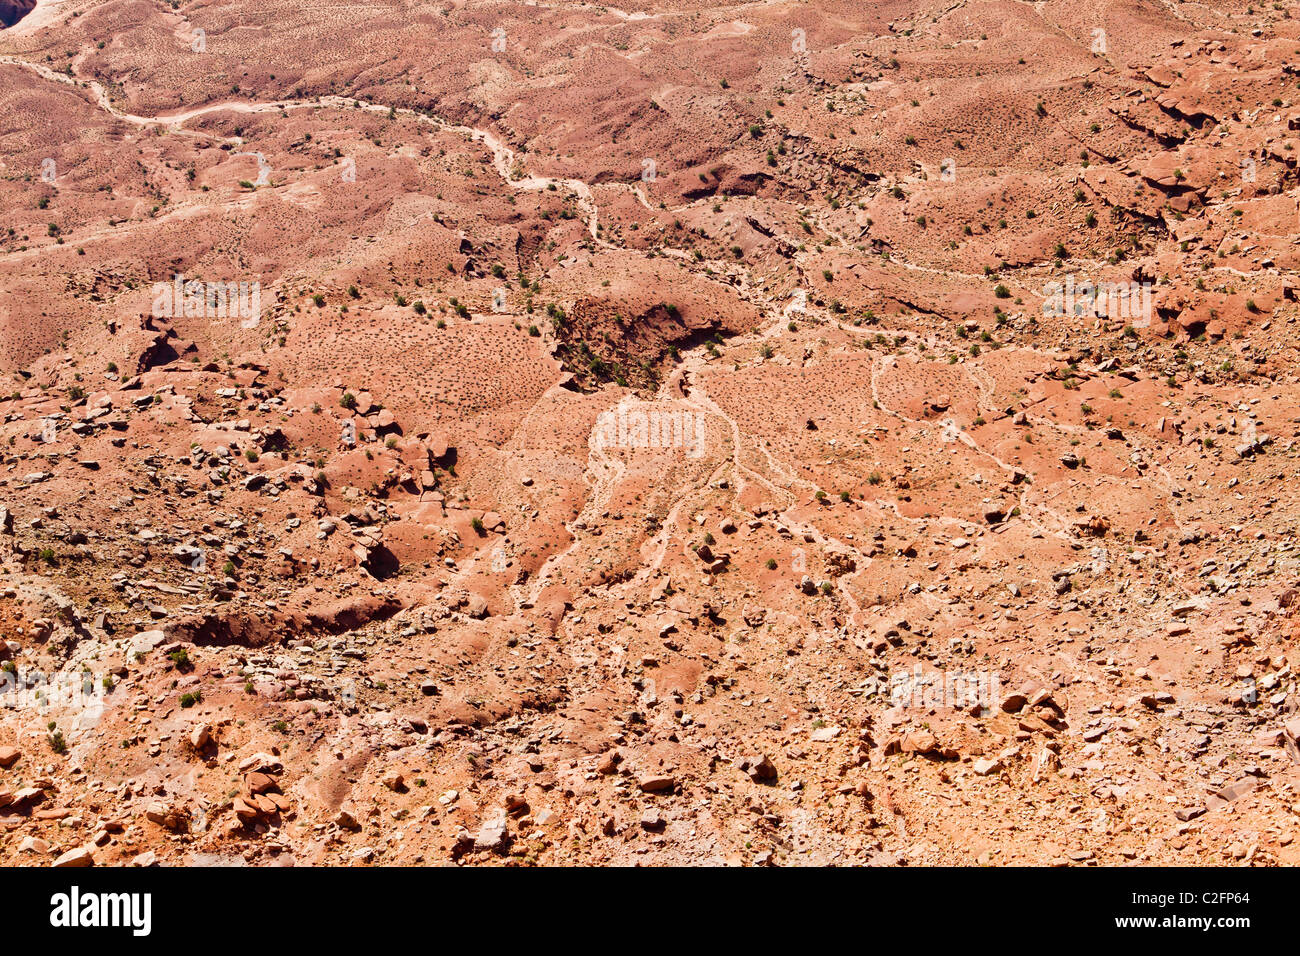 A detail shot looking down on a drainage basin in Canyonlands National Park, Utah, USA. - Stock Image